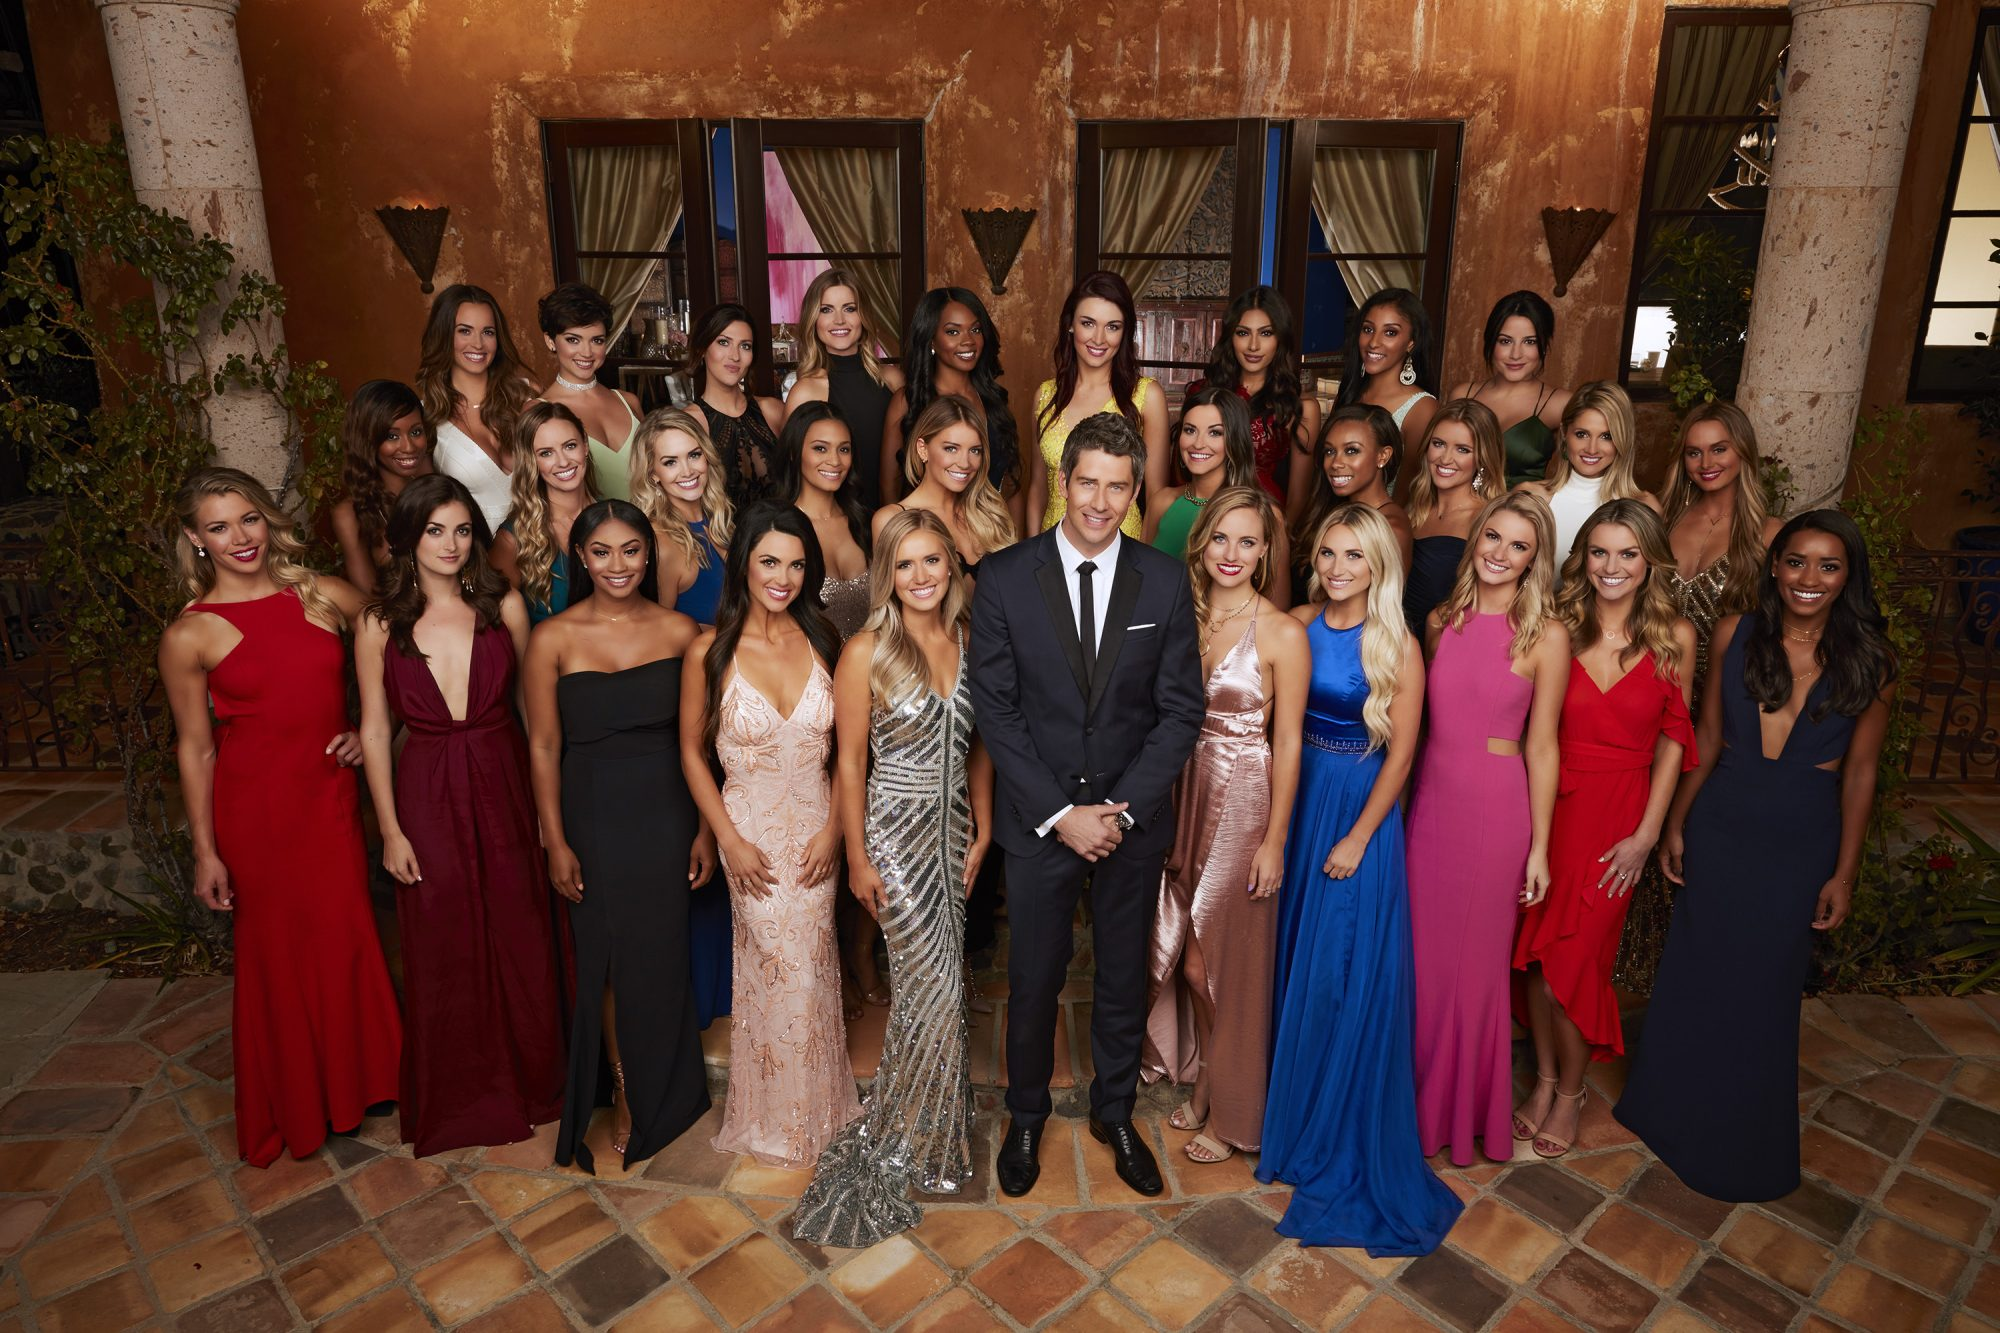 Here's Why Being a 'Bachelor' Contestant Could Be Bad for Your Mental Health